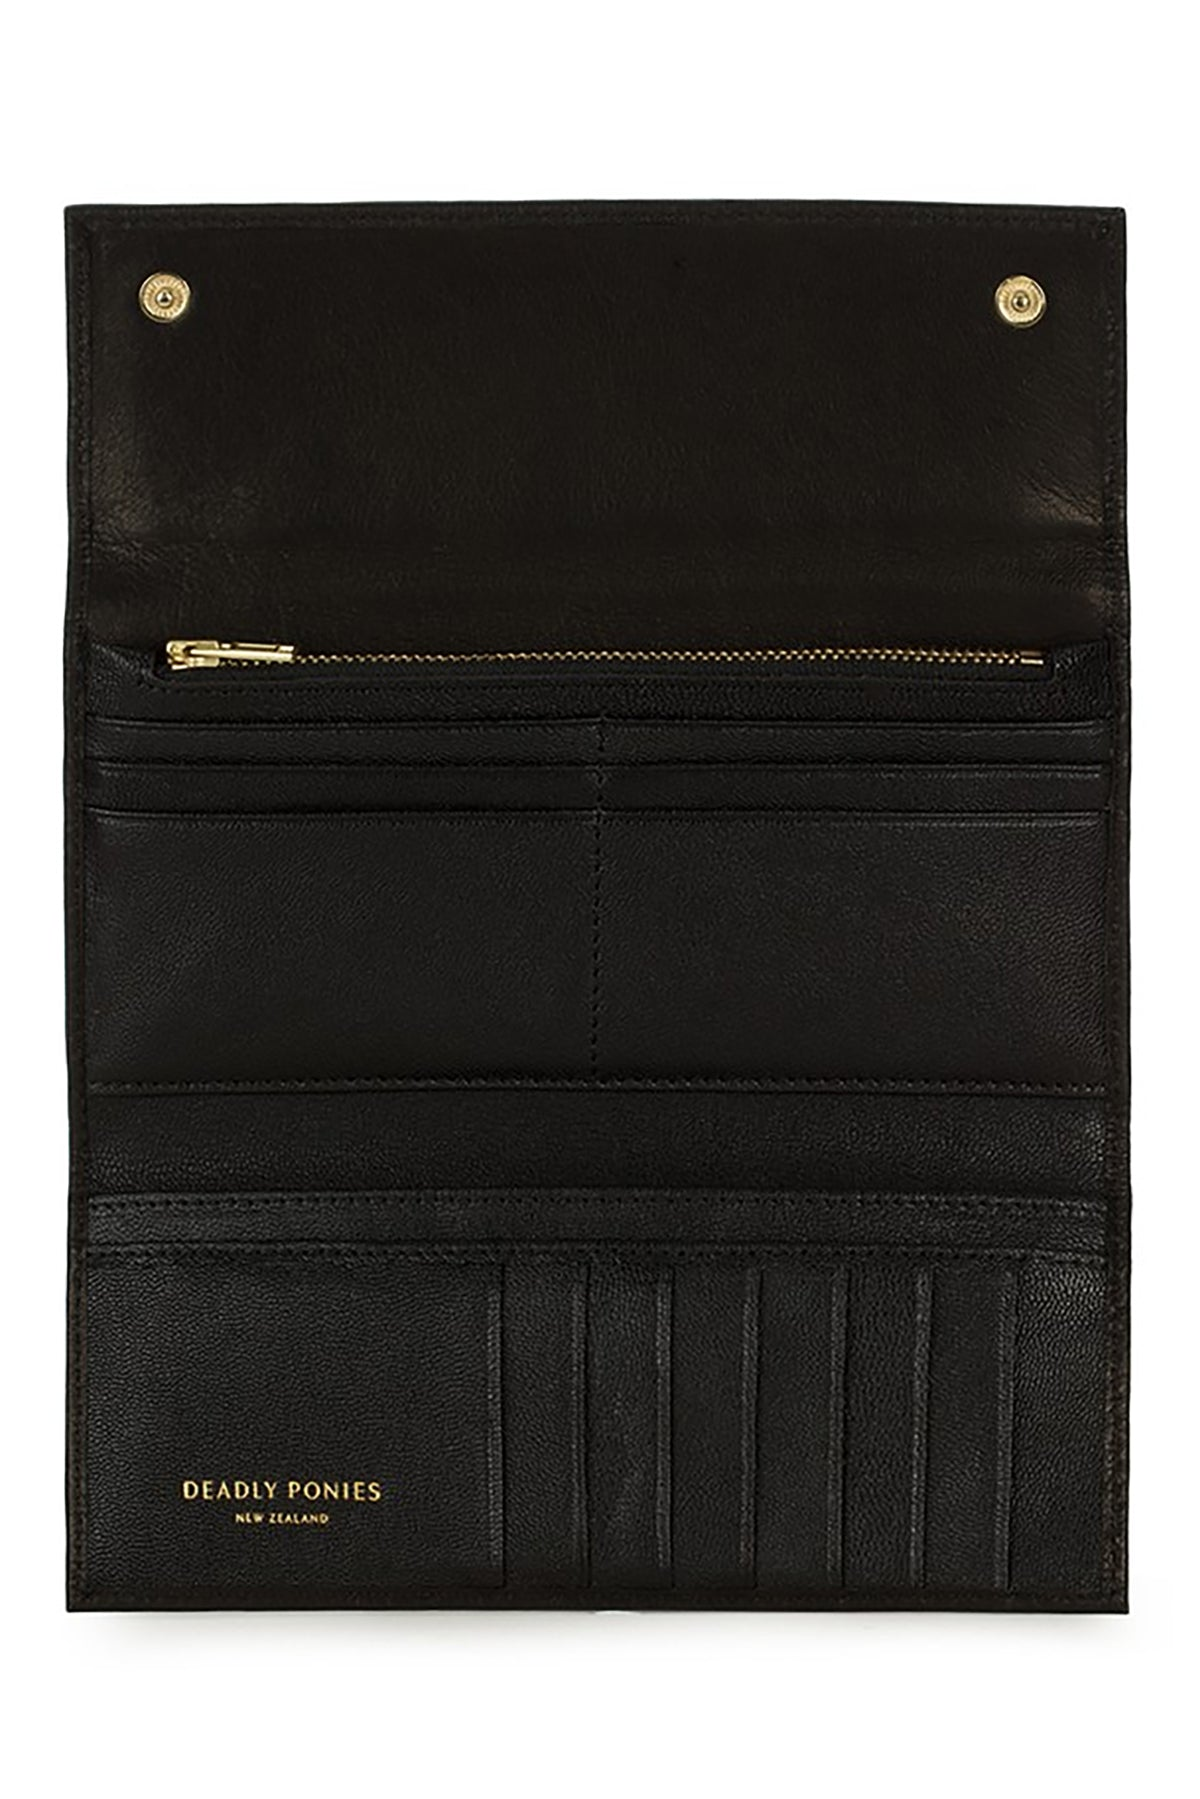 Deadly Ponies Lady Wallet // Black